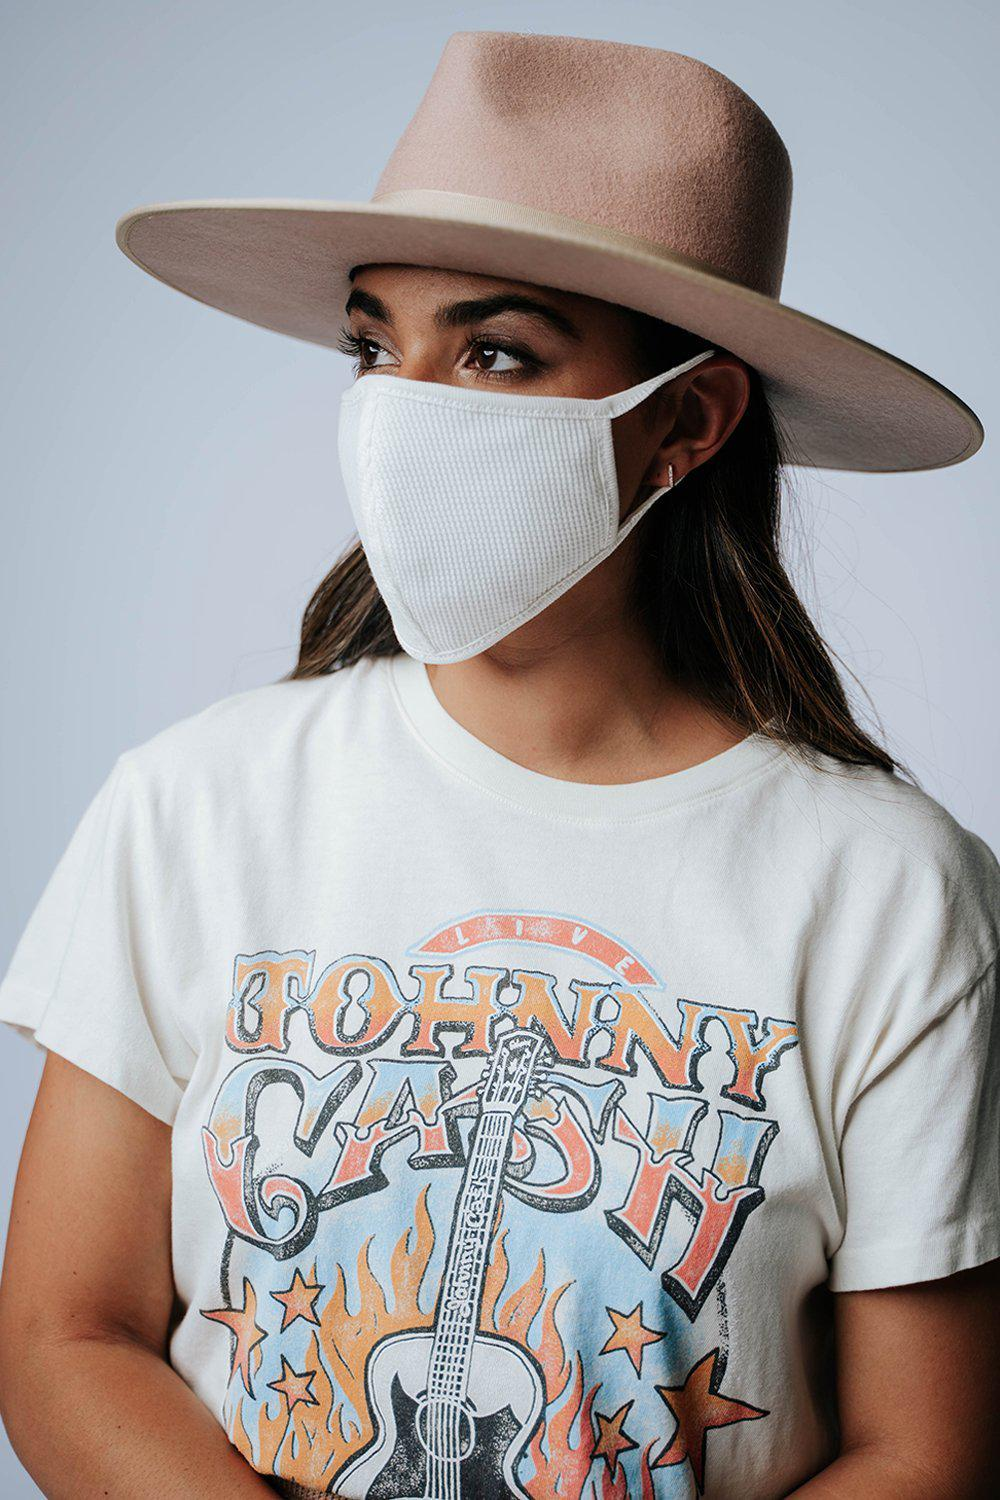 best_seller, Don't Forget Me Face Mask in Ivory - FINAL SALE, Accessory, women's clothing, dresses, skirts, coats, jackets, shoes, boots, tops, tee shirts, jeans, free people, levi's, rollas, jumpsuits, bottoms, tops, sweaters, pullovers, pants, shorts, sweats,.